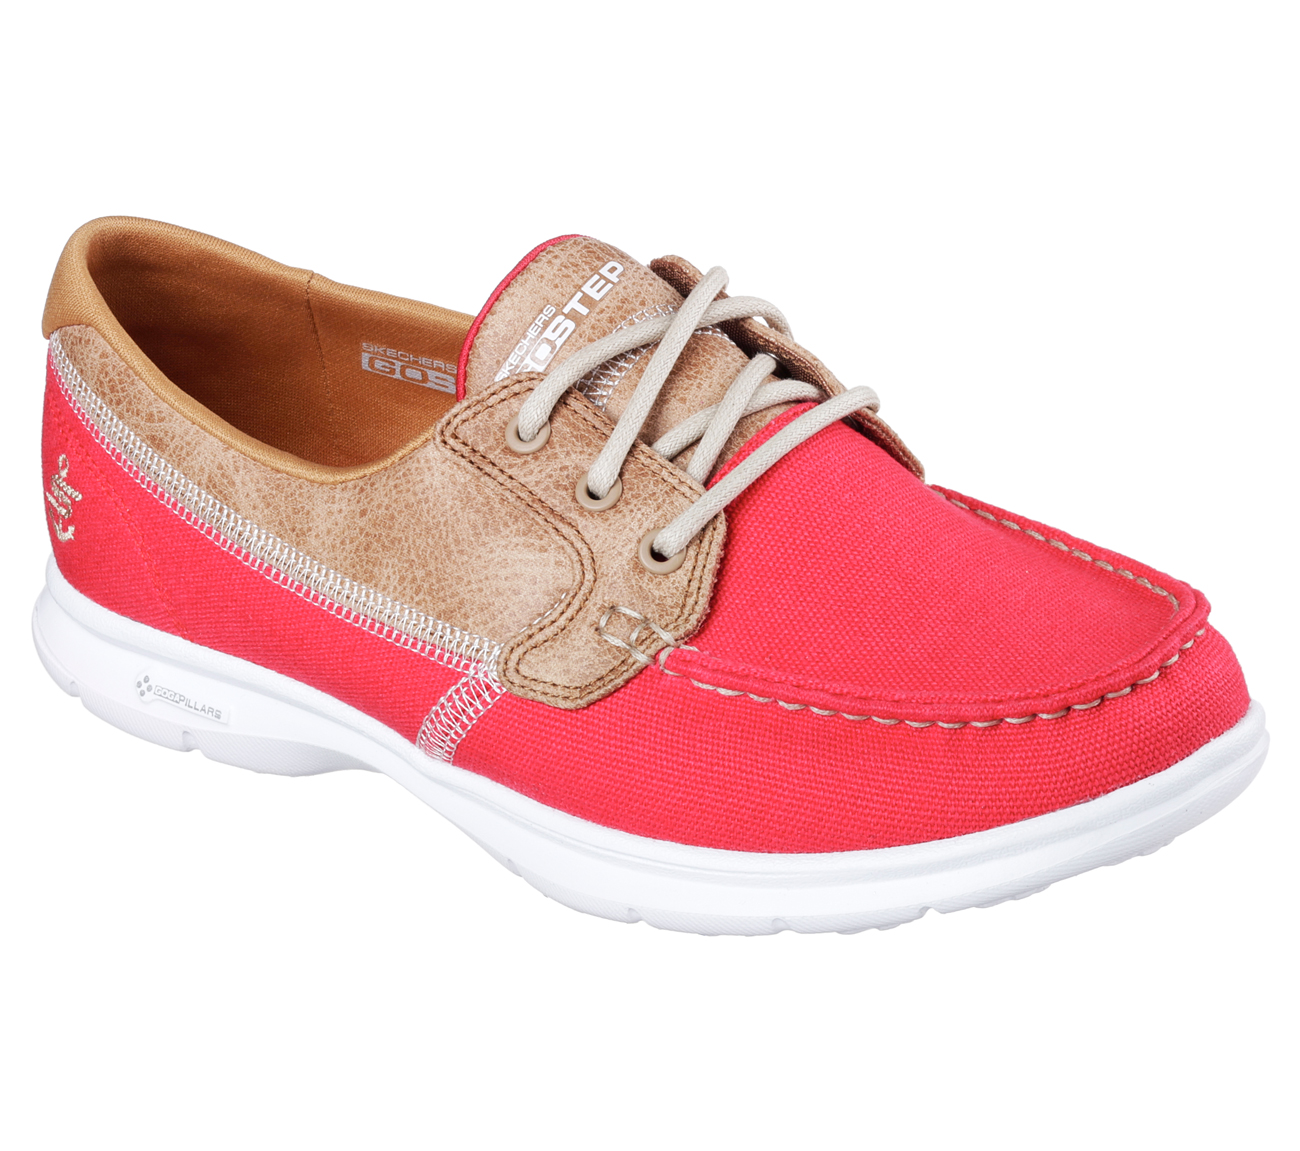 Skechers High Performance Shoes